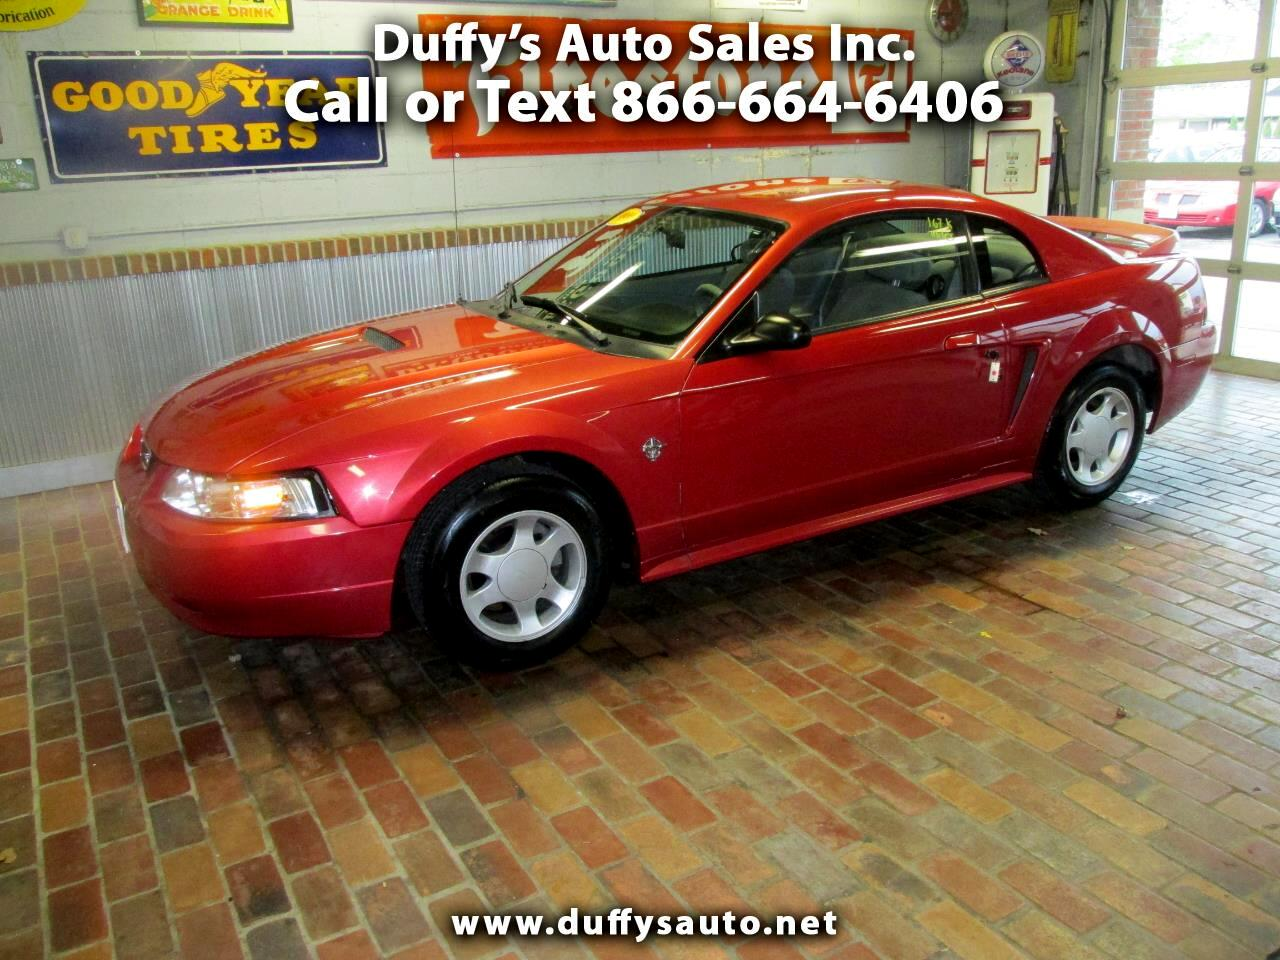 1999 Ford Mustang 2dr Cpe